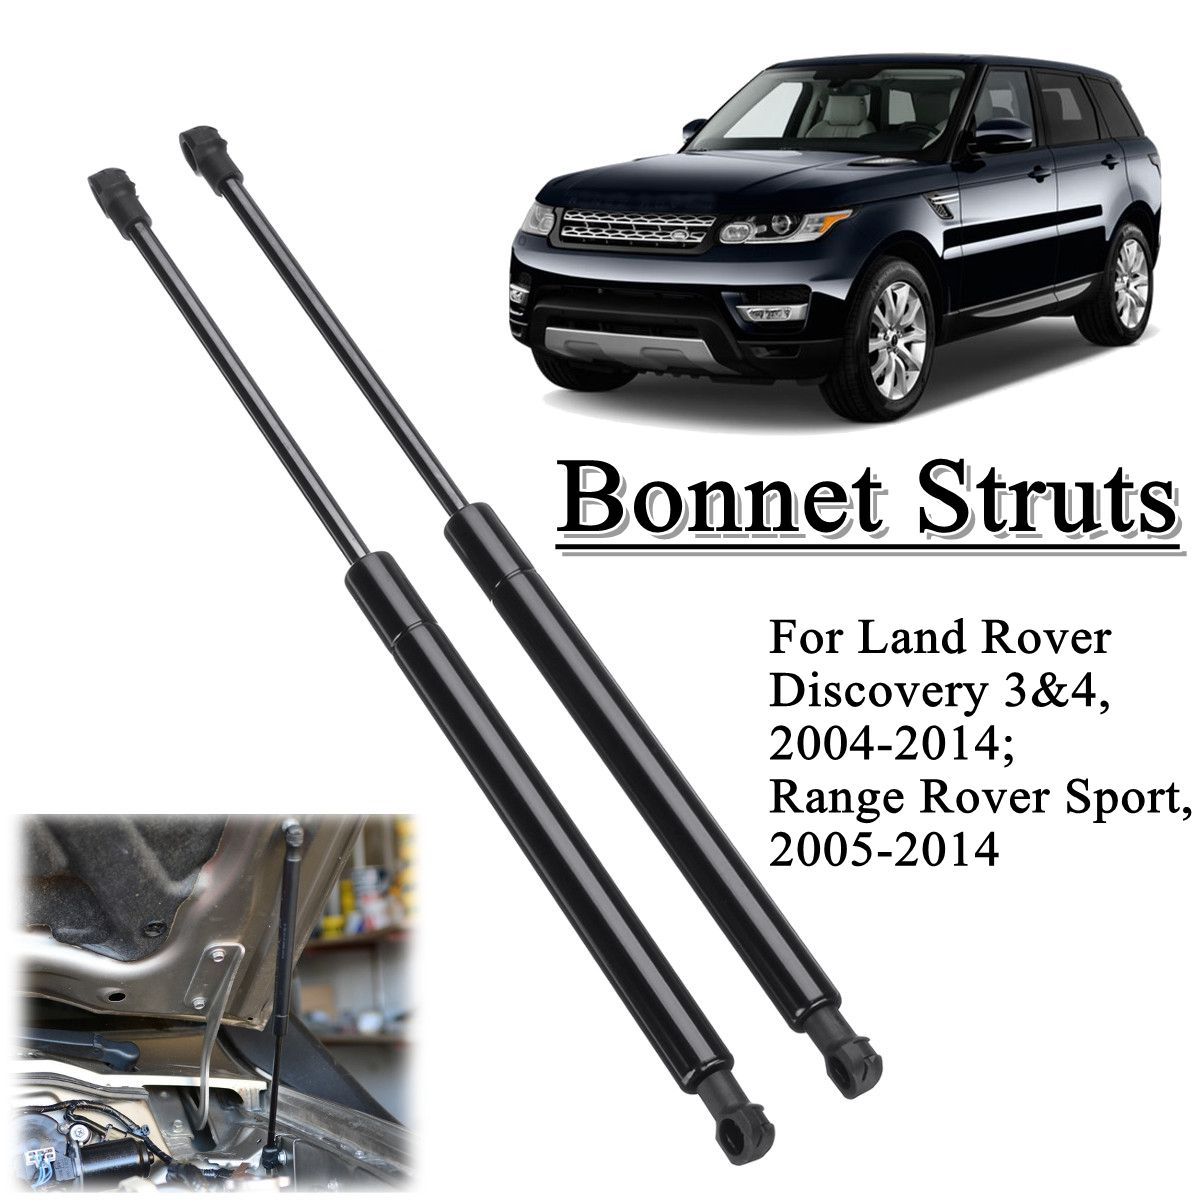 2pcs Front Bonnet Hood Support Gas Struts LR009106 For Land Rover Discovery /Range Rover Sport 2004-20142pcs Front Bonnet Hood Support Gas Struts LR009106 For Land Rover Discovery /Range Rover Sport 2004-2014